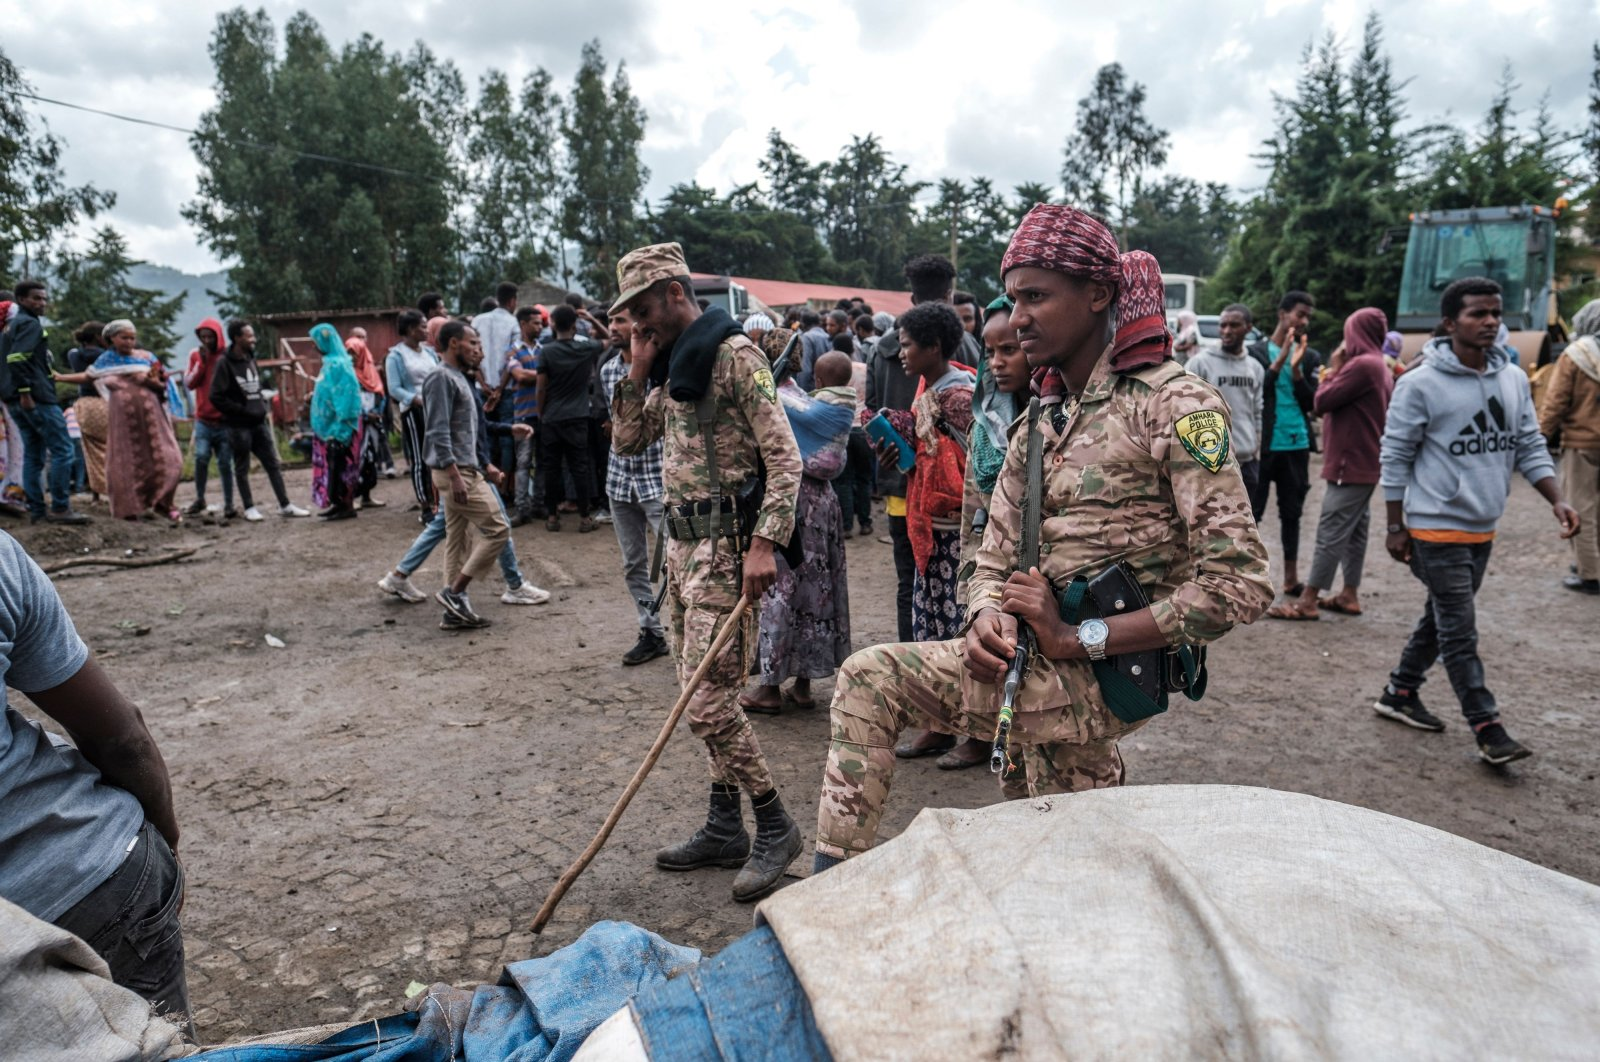 Members of the Special Force of the Amhara Police stand next to sacks of food during a food distribution for internally displaced people (IDP) from the Amhara region, in the city of Dessie, Ethiopia, Aug. 23, 2021. (Photo by Eduardo Soteras via AFP Photo)